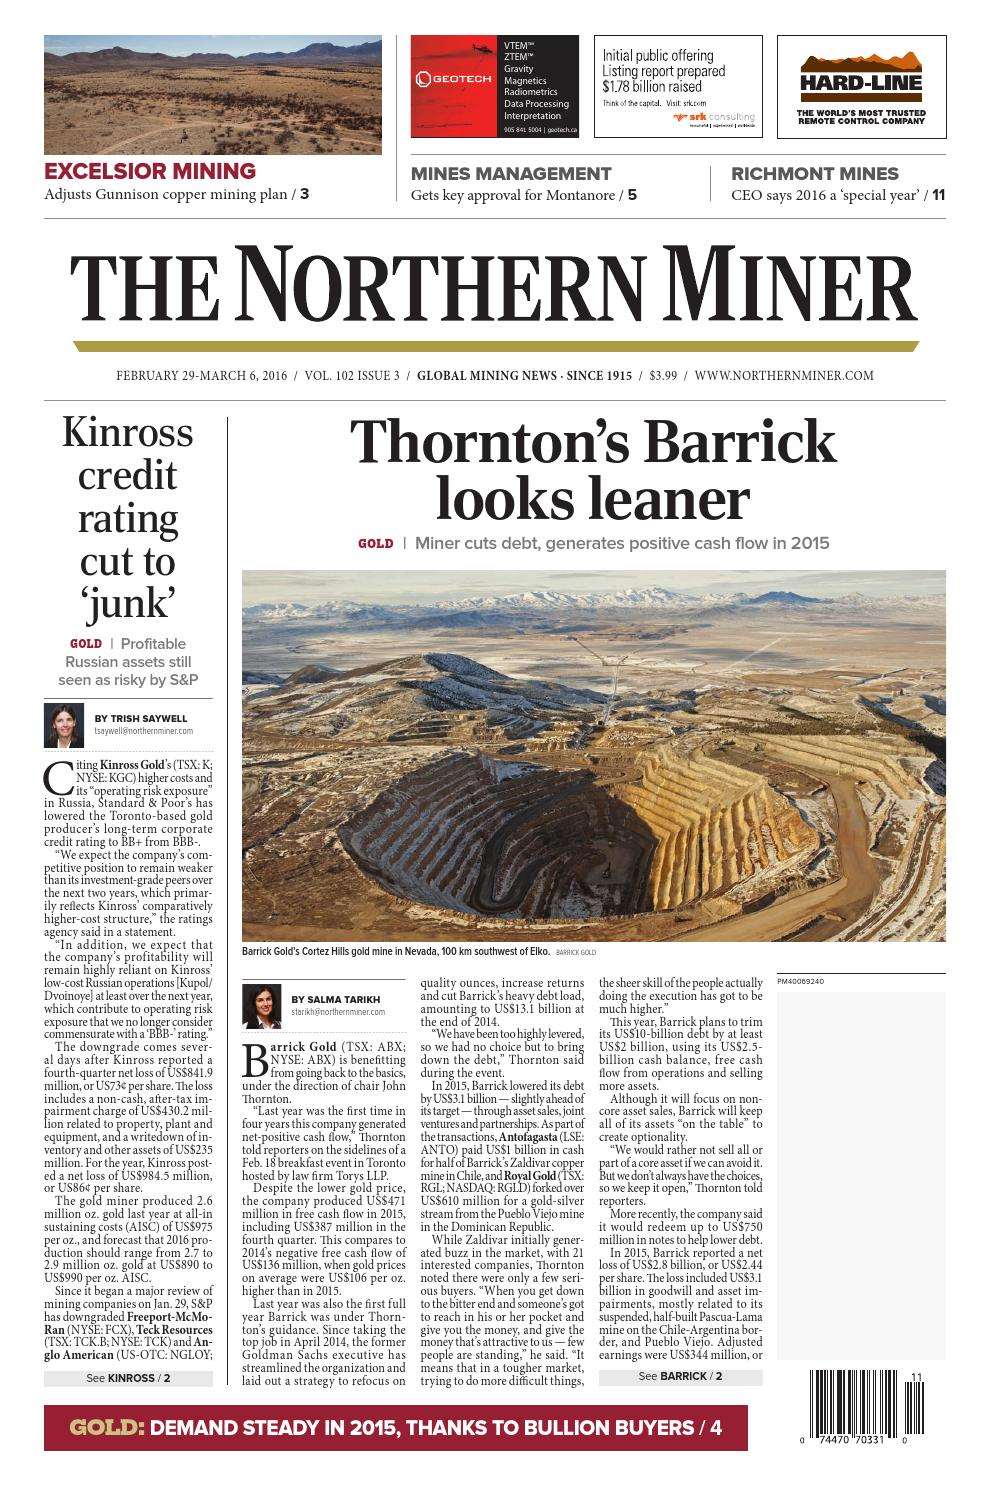 The Northern Miner February 29March 6, 2016 By The Northern in Zinco Corp Was A Calendar Year S Corporation